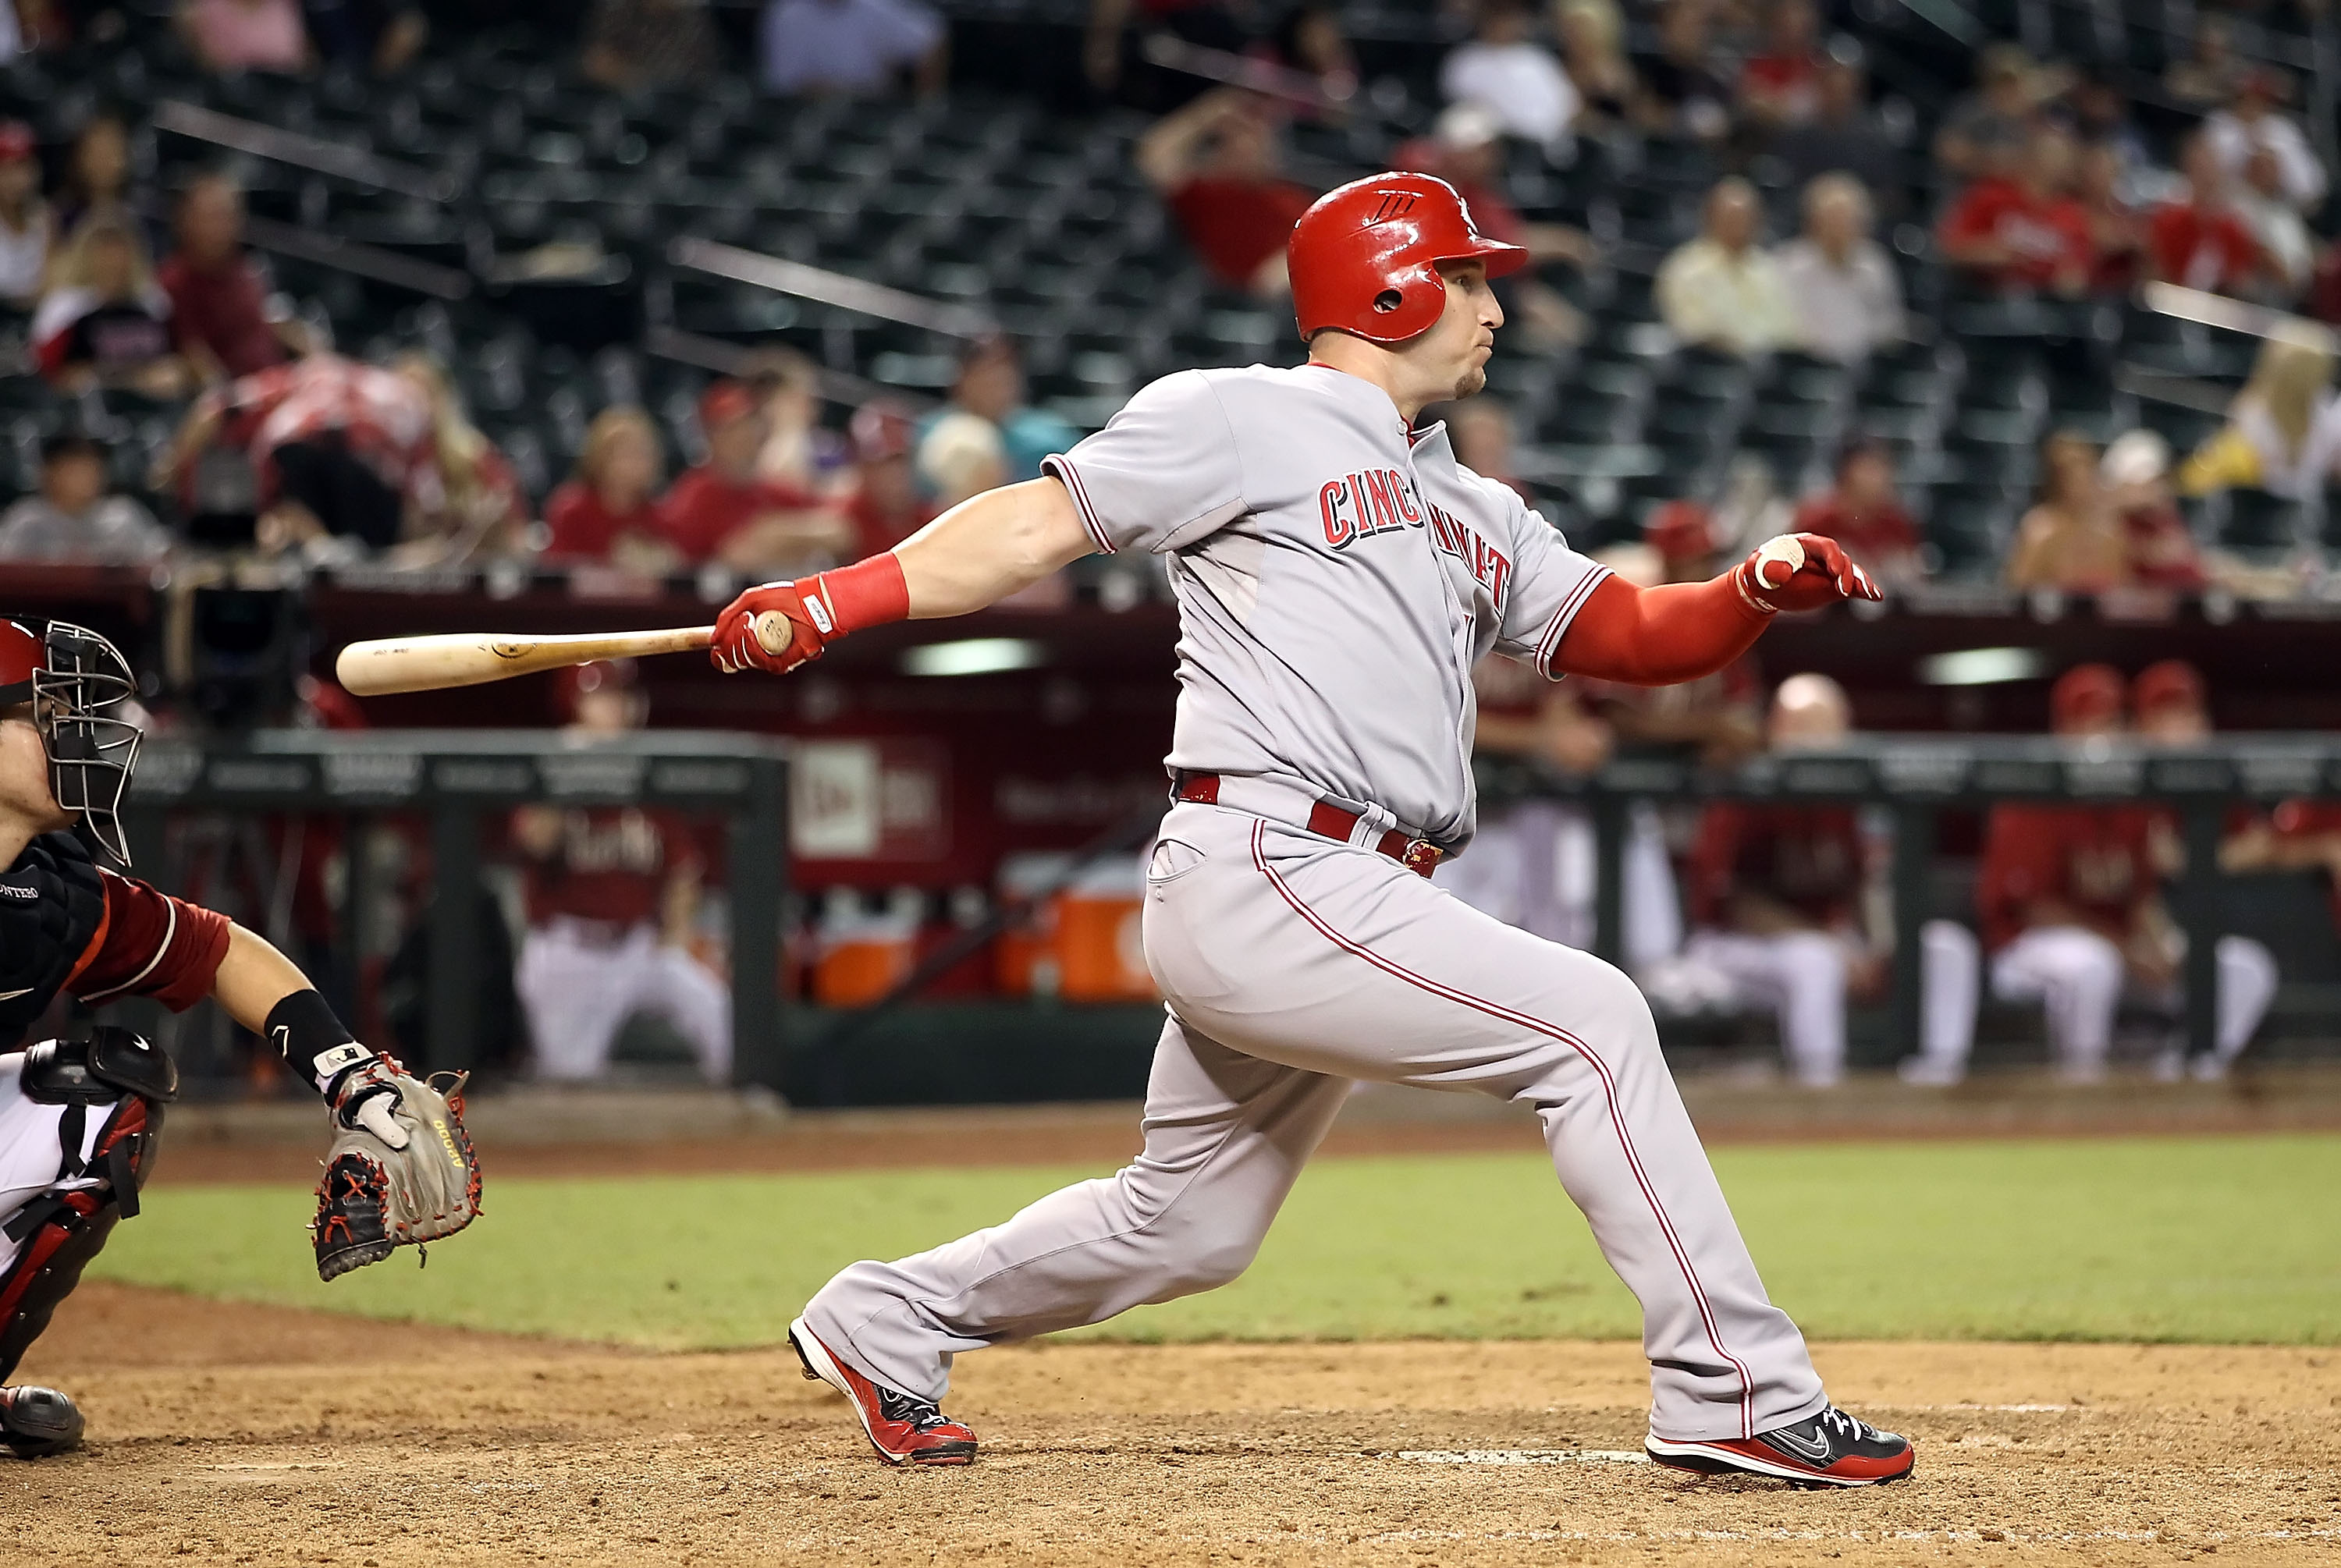 PHOENIX - AUGUST 18:  Laynce Nix #17 of the Cincinnati Reds hits a 2 RBI double against the Arizona Diamondbacks during the ninth inning of the Major League Baseball game at Chase Field on August 18, 2010 in Phoenix, Arizona.  (Photo by Christian Petersen